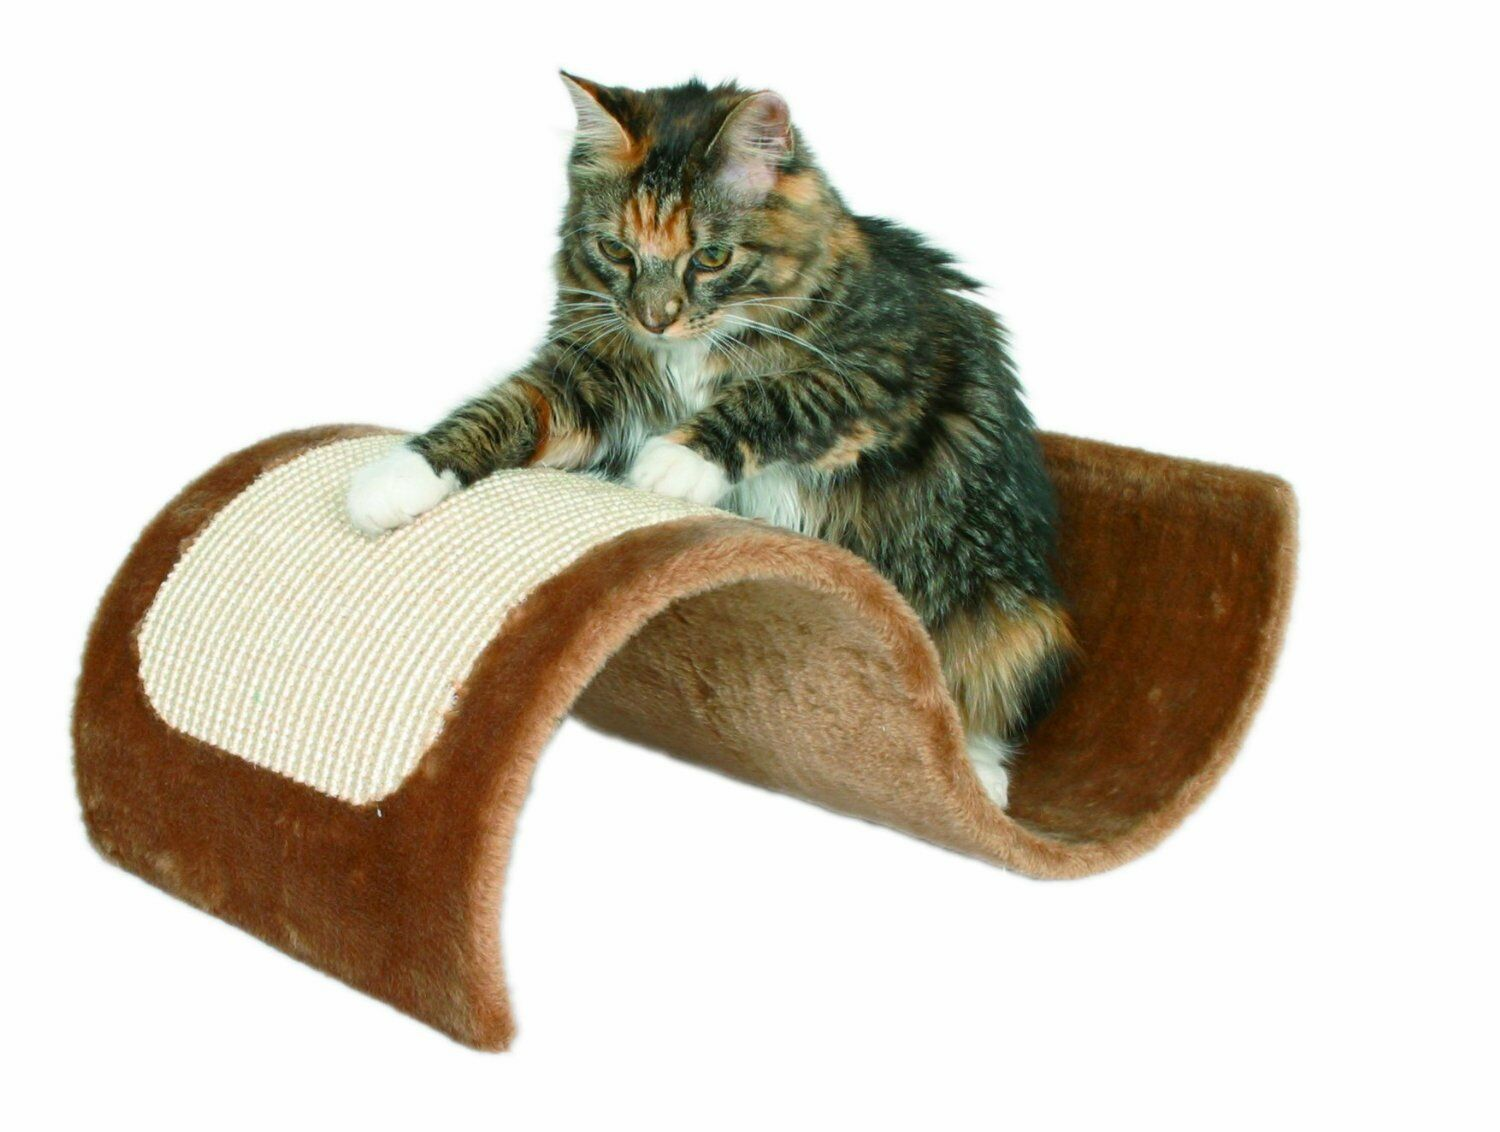 Trixie 43260 Wavy Scratching Board 29  - 18  - 50 cm Brown